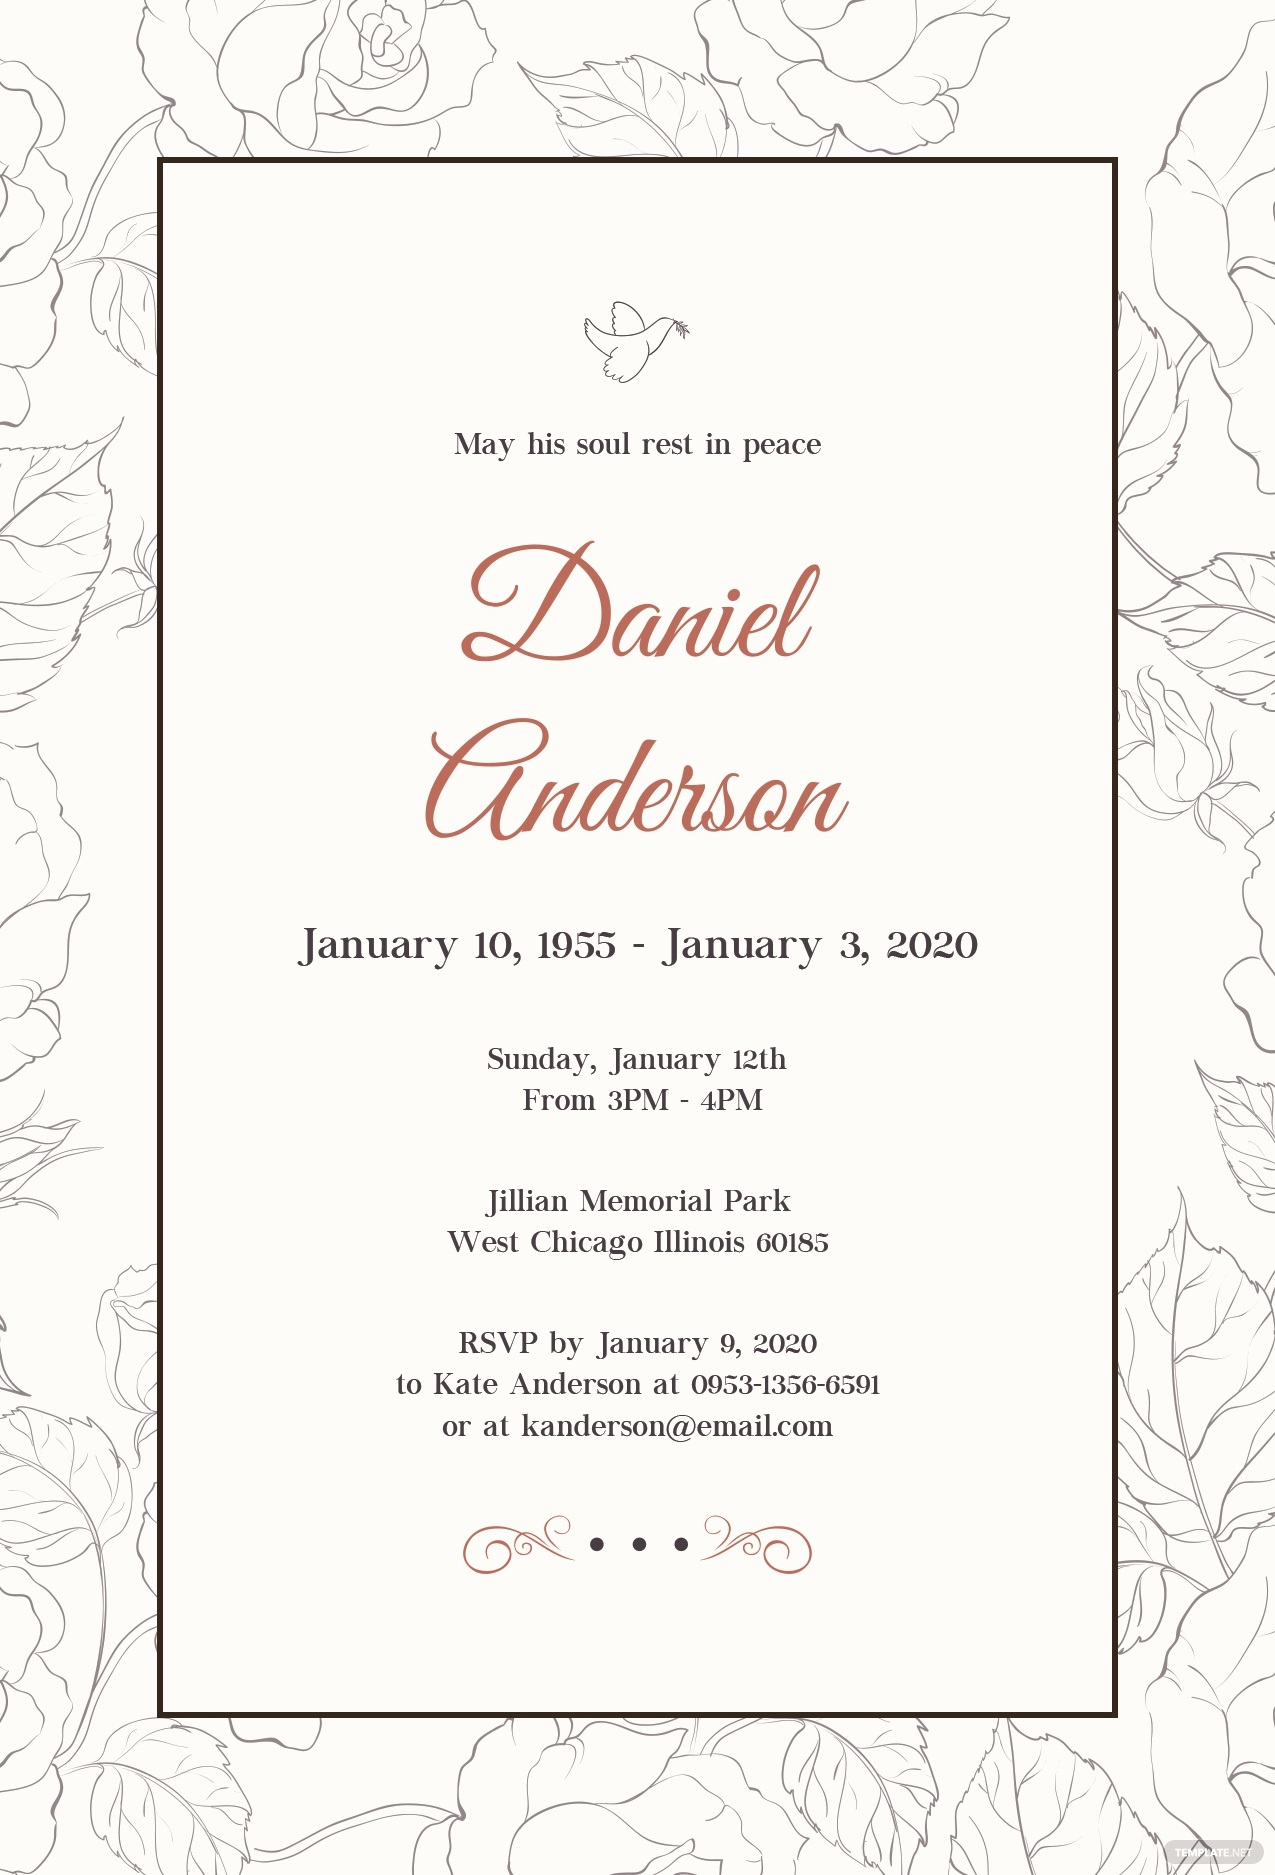 Funeral Invitation Template Free Fresh Free Simple Funeral Invitation Template In Psd Ms Word